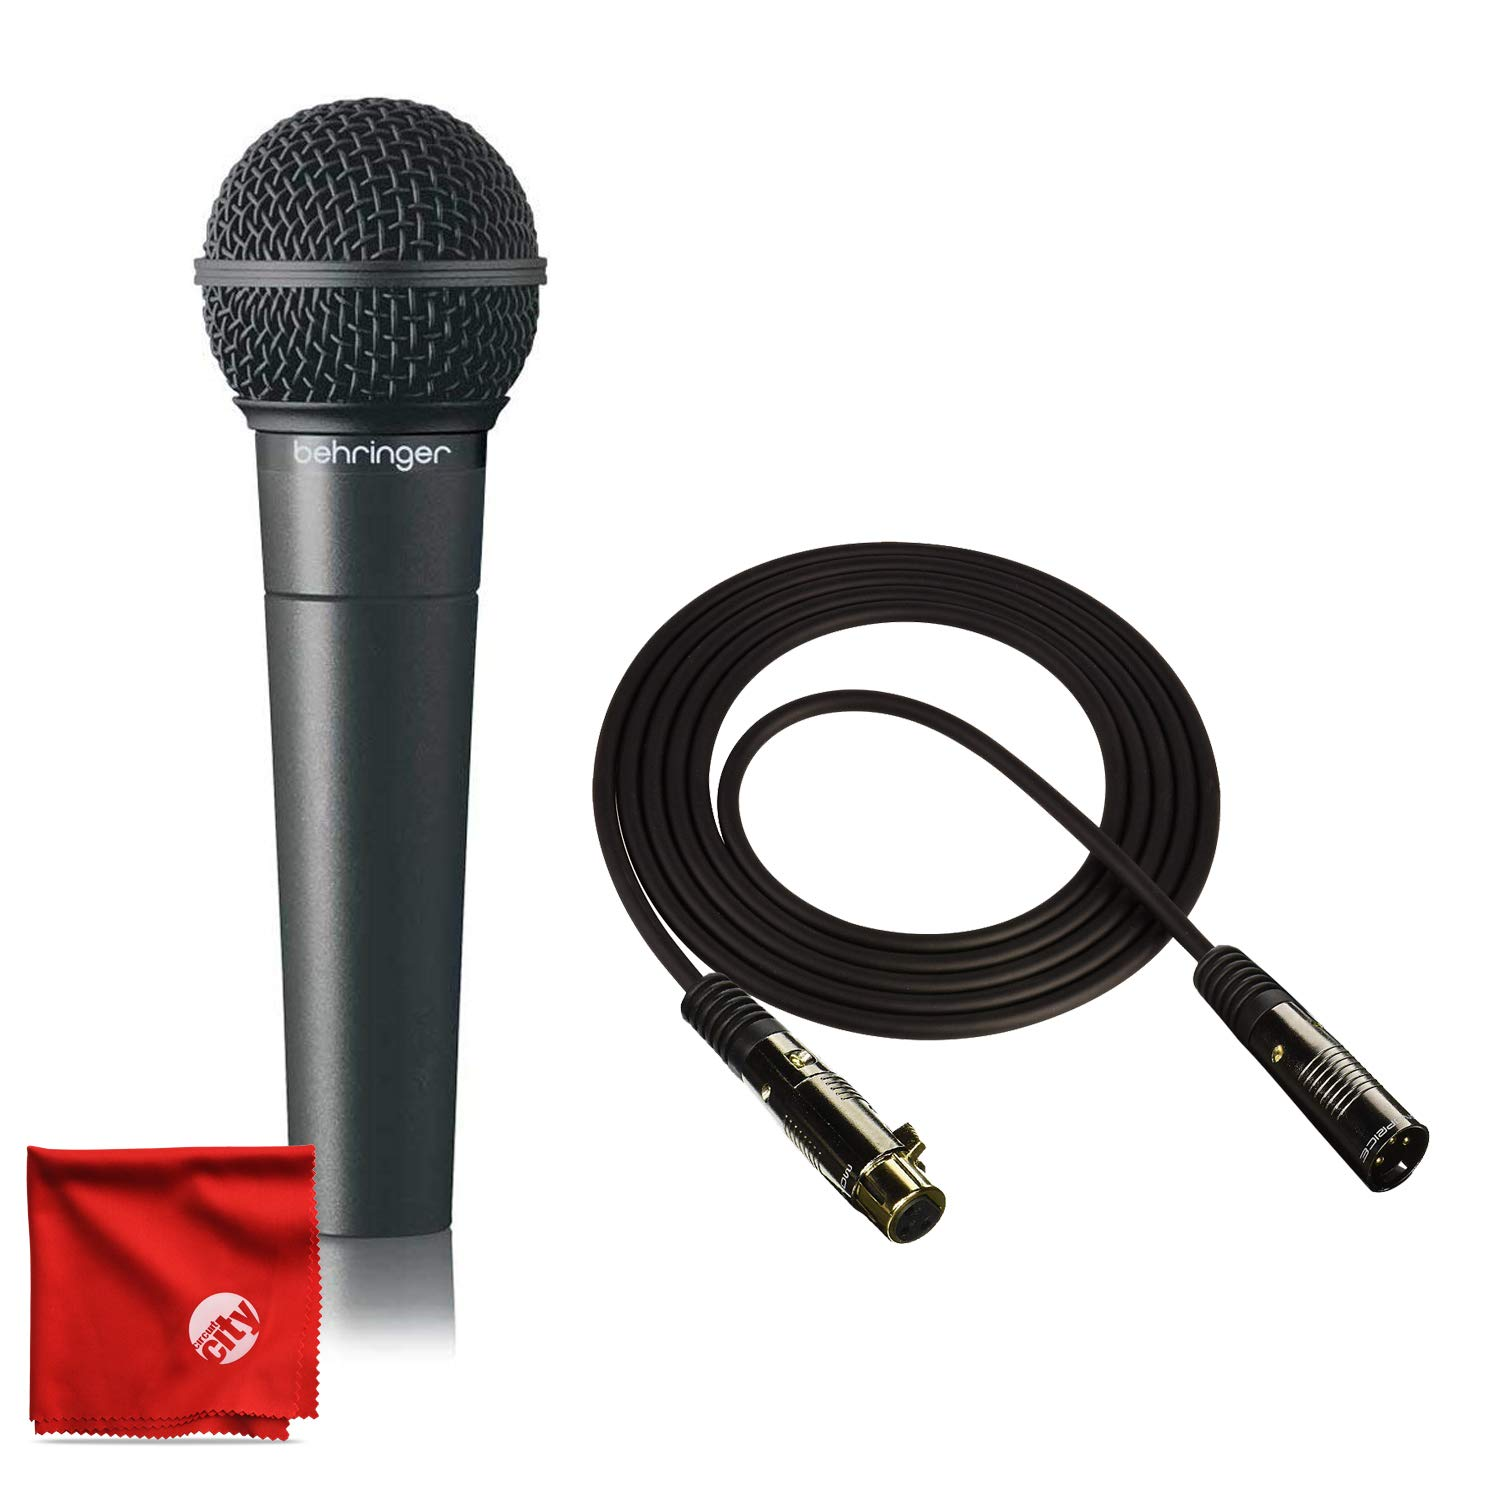 Behringer XM8500 Dynamic Microphone Bundle with Pro 10ft XLR Cable by Circuit City